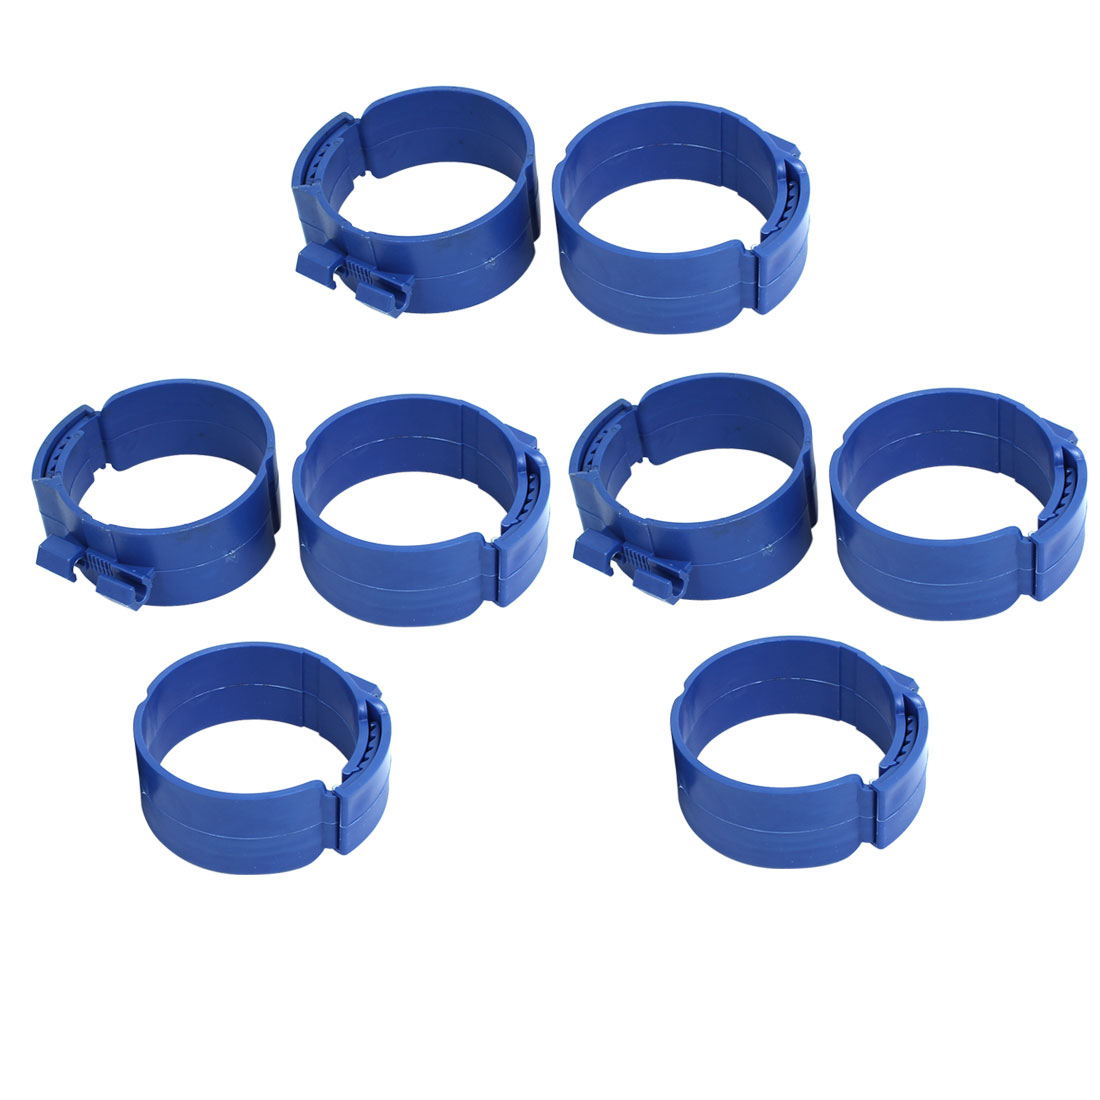 90mm Dia 38mm Width Central Air Conditioner Pipe Clip Clamp Blue 8pcs